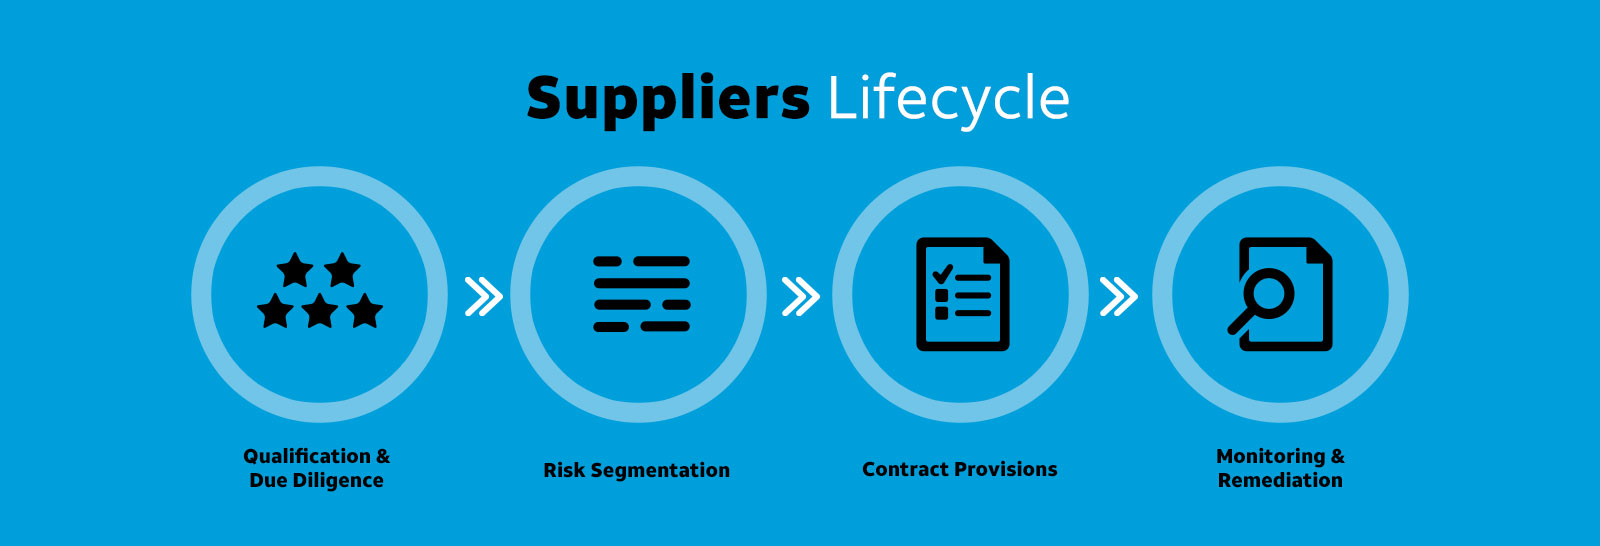 Suppliers Lifecycle Desktop